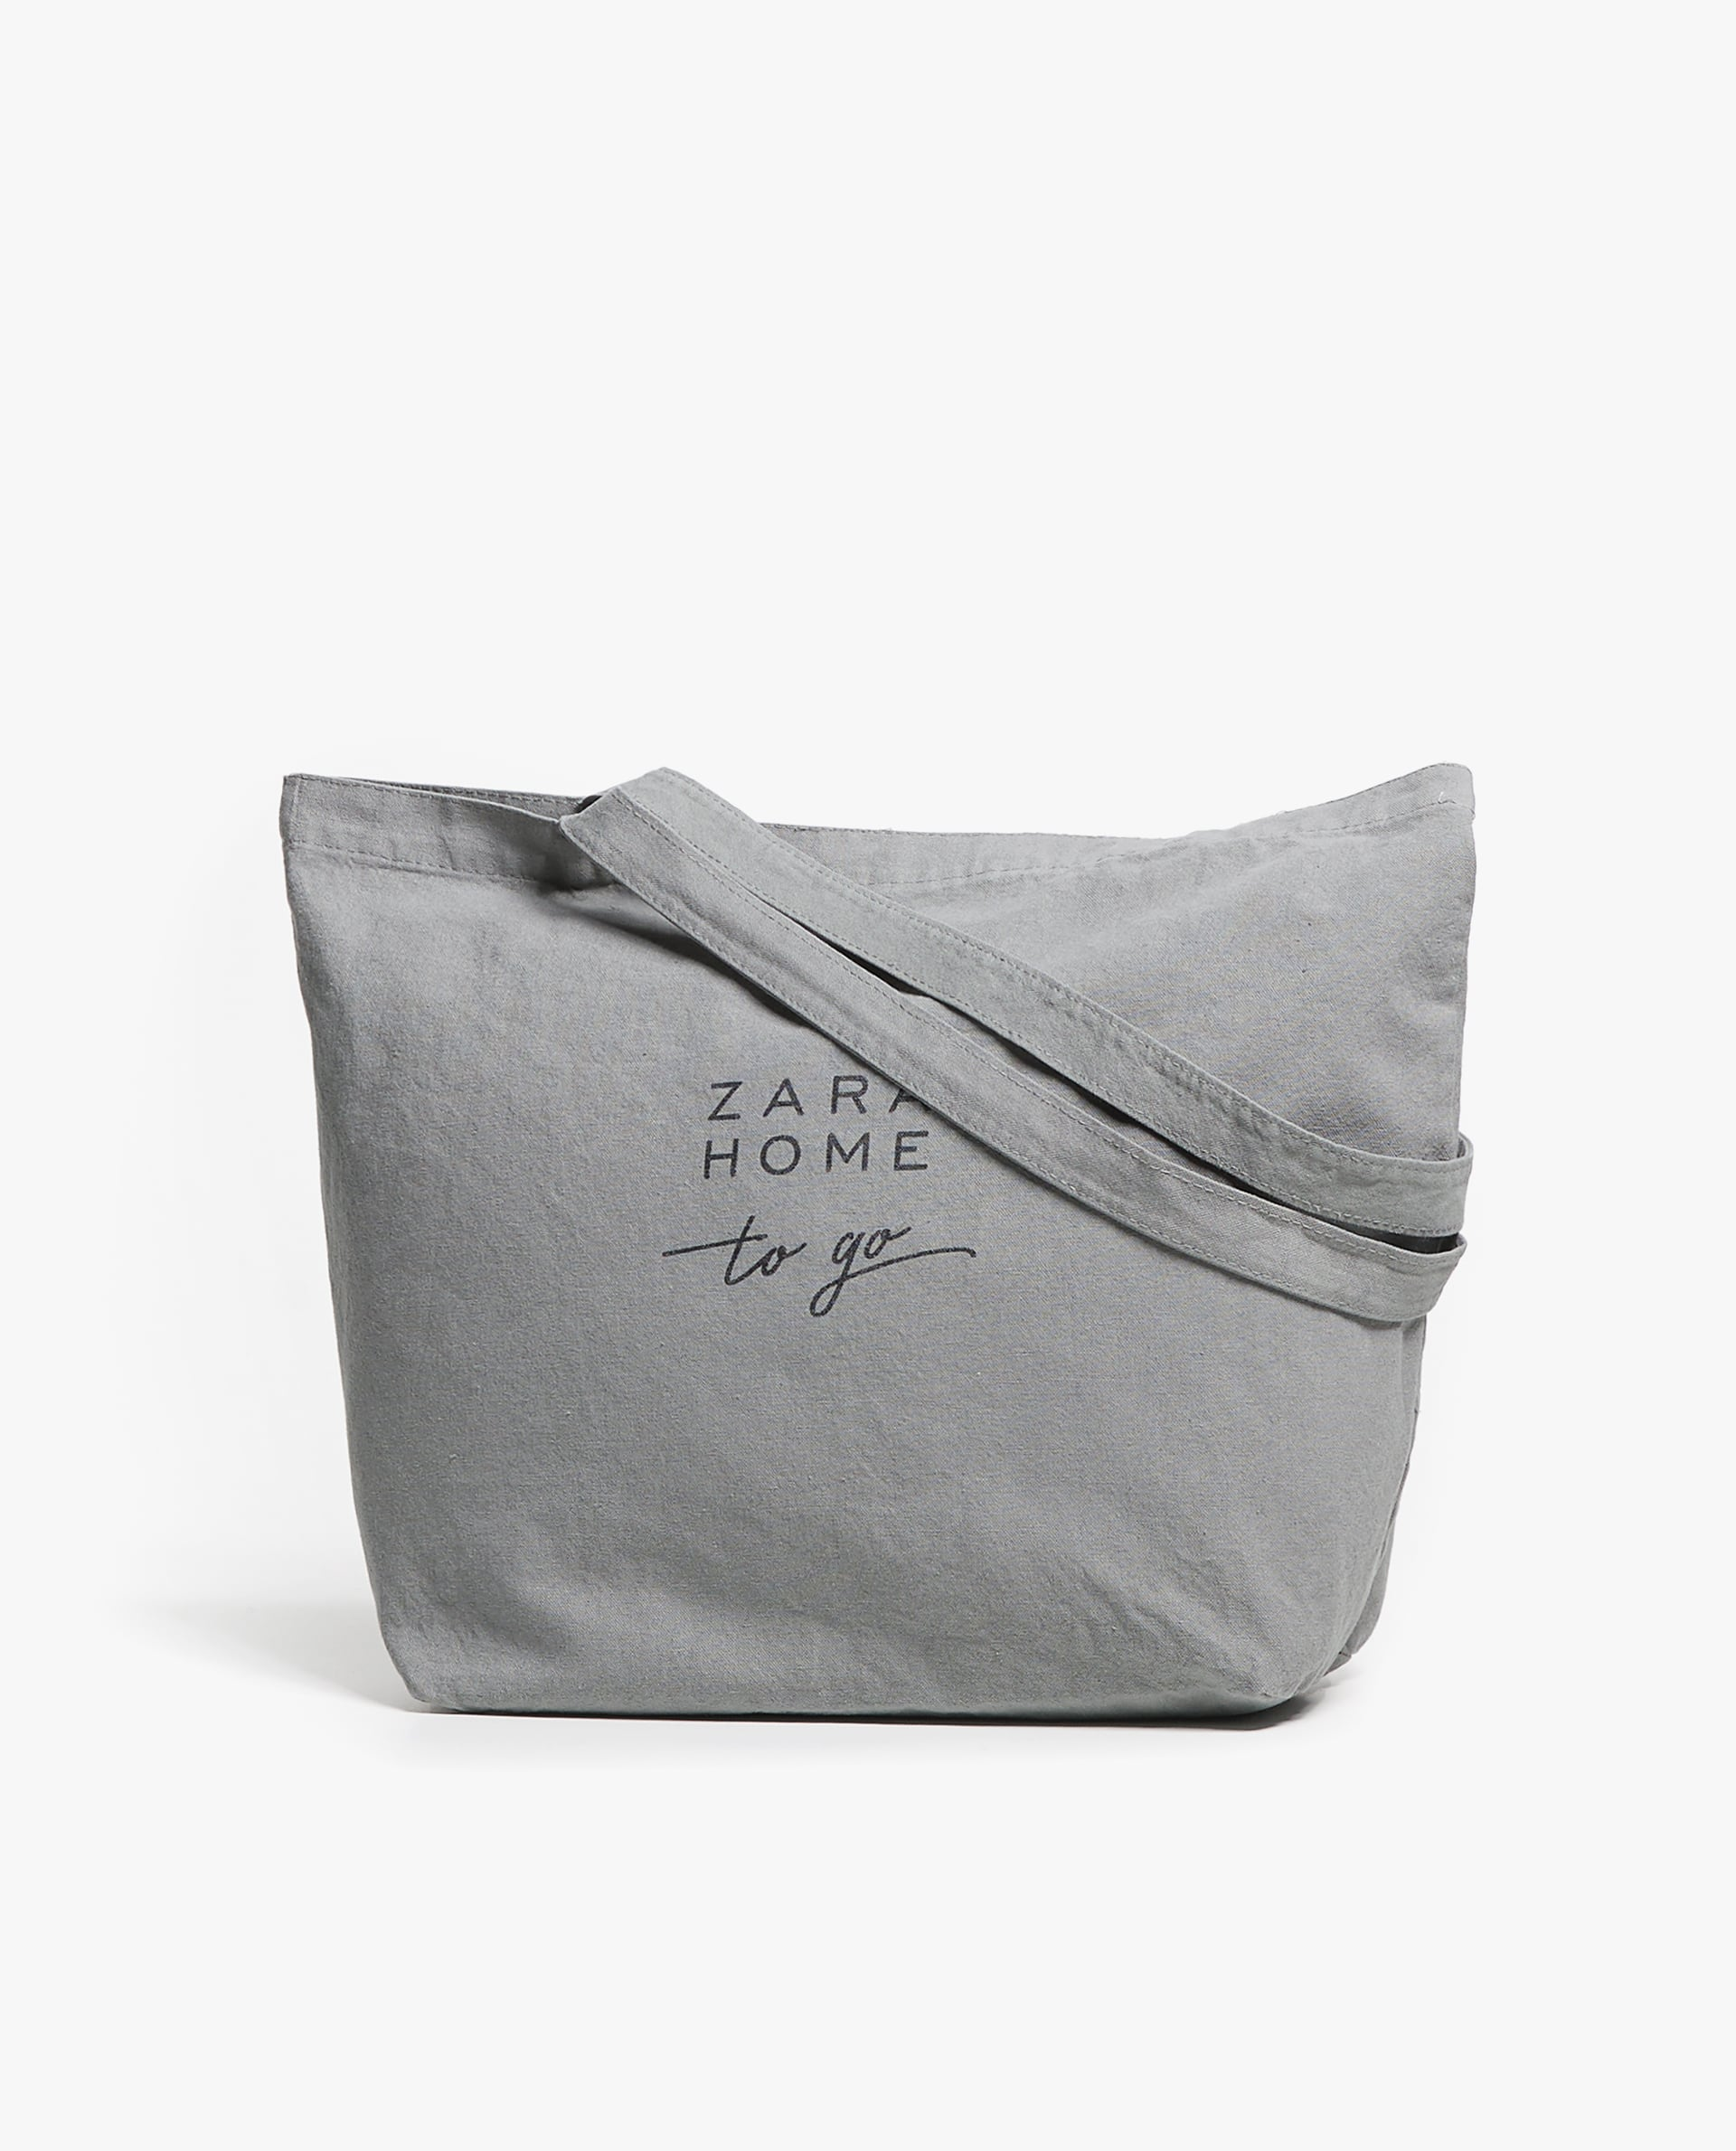 b38fb2337e SLOGAN BAG - KIDS - BEACH | Zara Home Malta